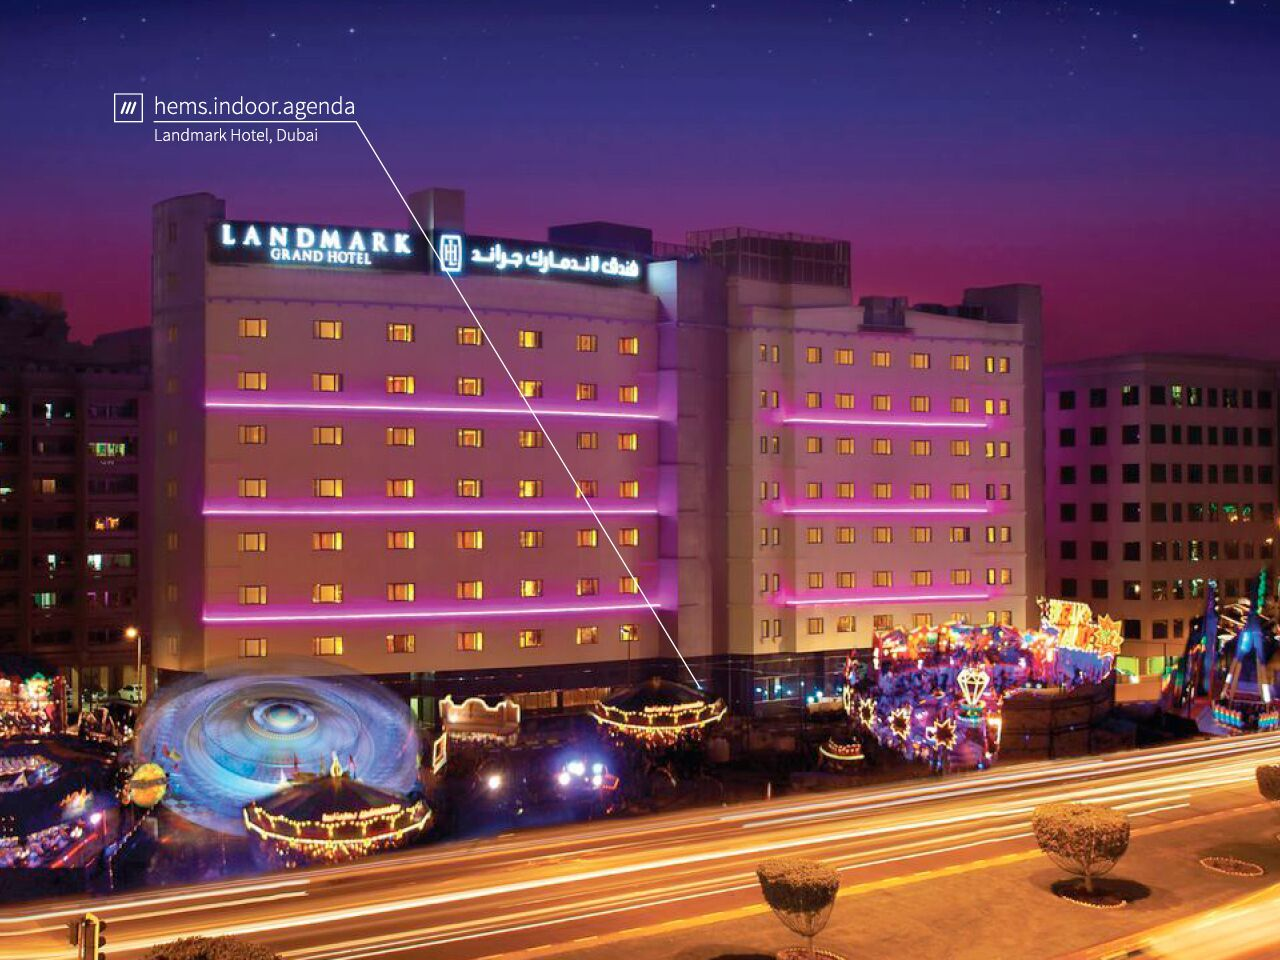 landmark hotel at night lit up by room lights at 3 words address hems.indoor.agenda